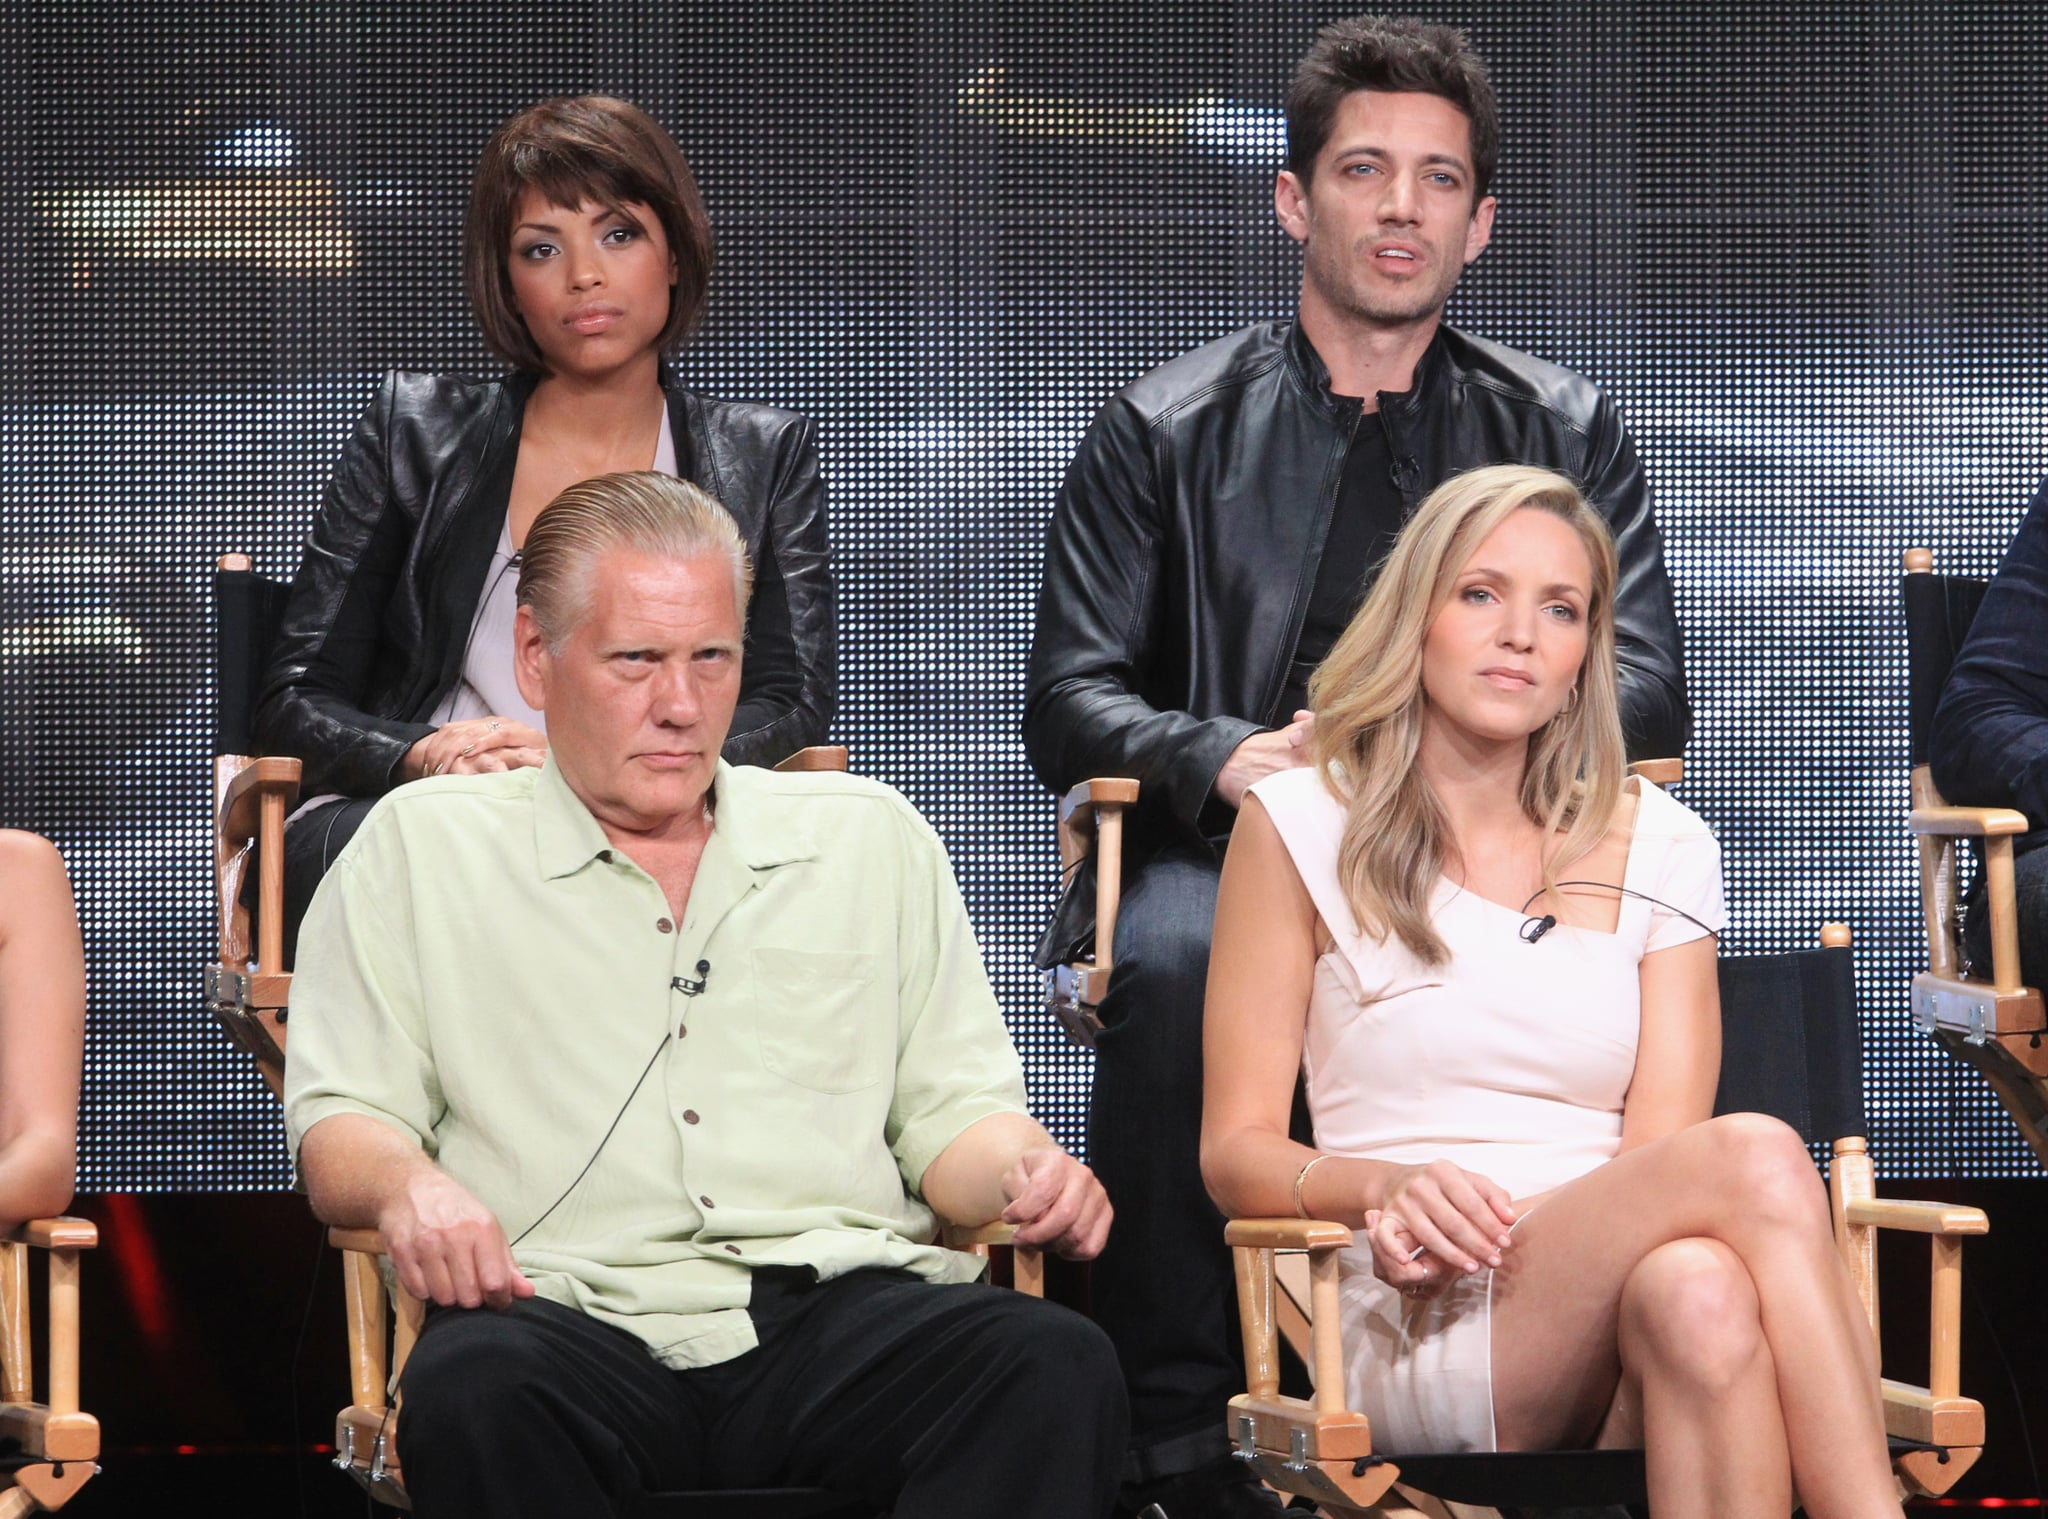 The Mob Doctor's Jaime Lee Kirchner, James Carpinello, William Forsythe, and Jordana Spiro spoke at the show's TCA panel.